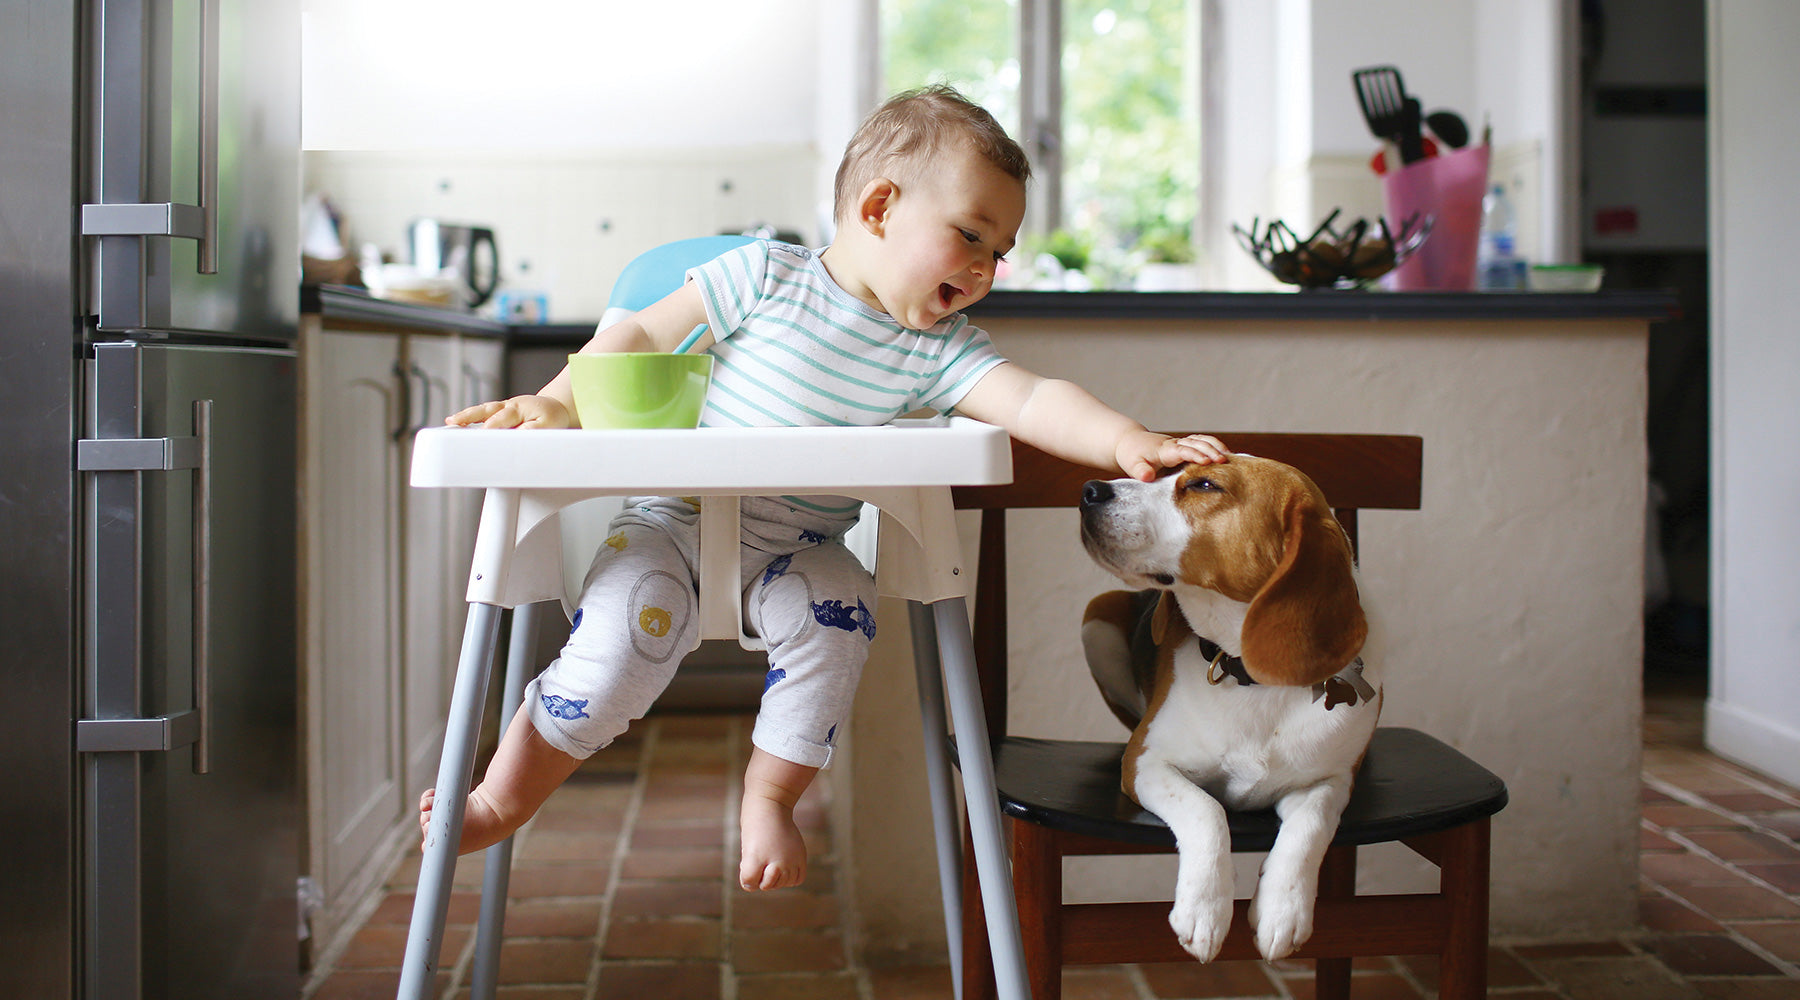 Baby sitting in a high chair and petting a dog